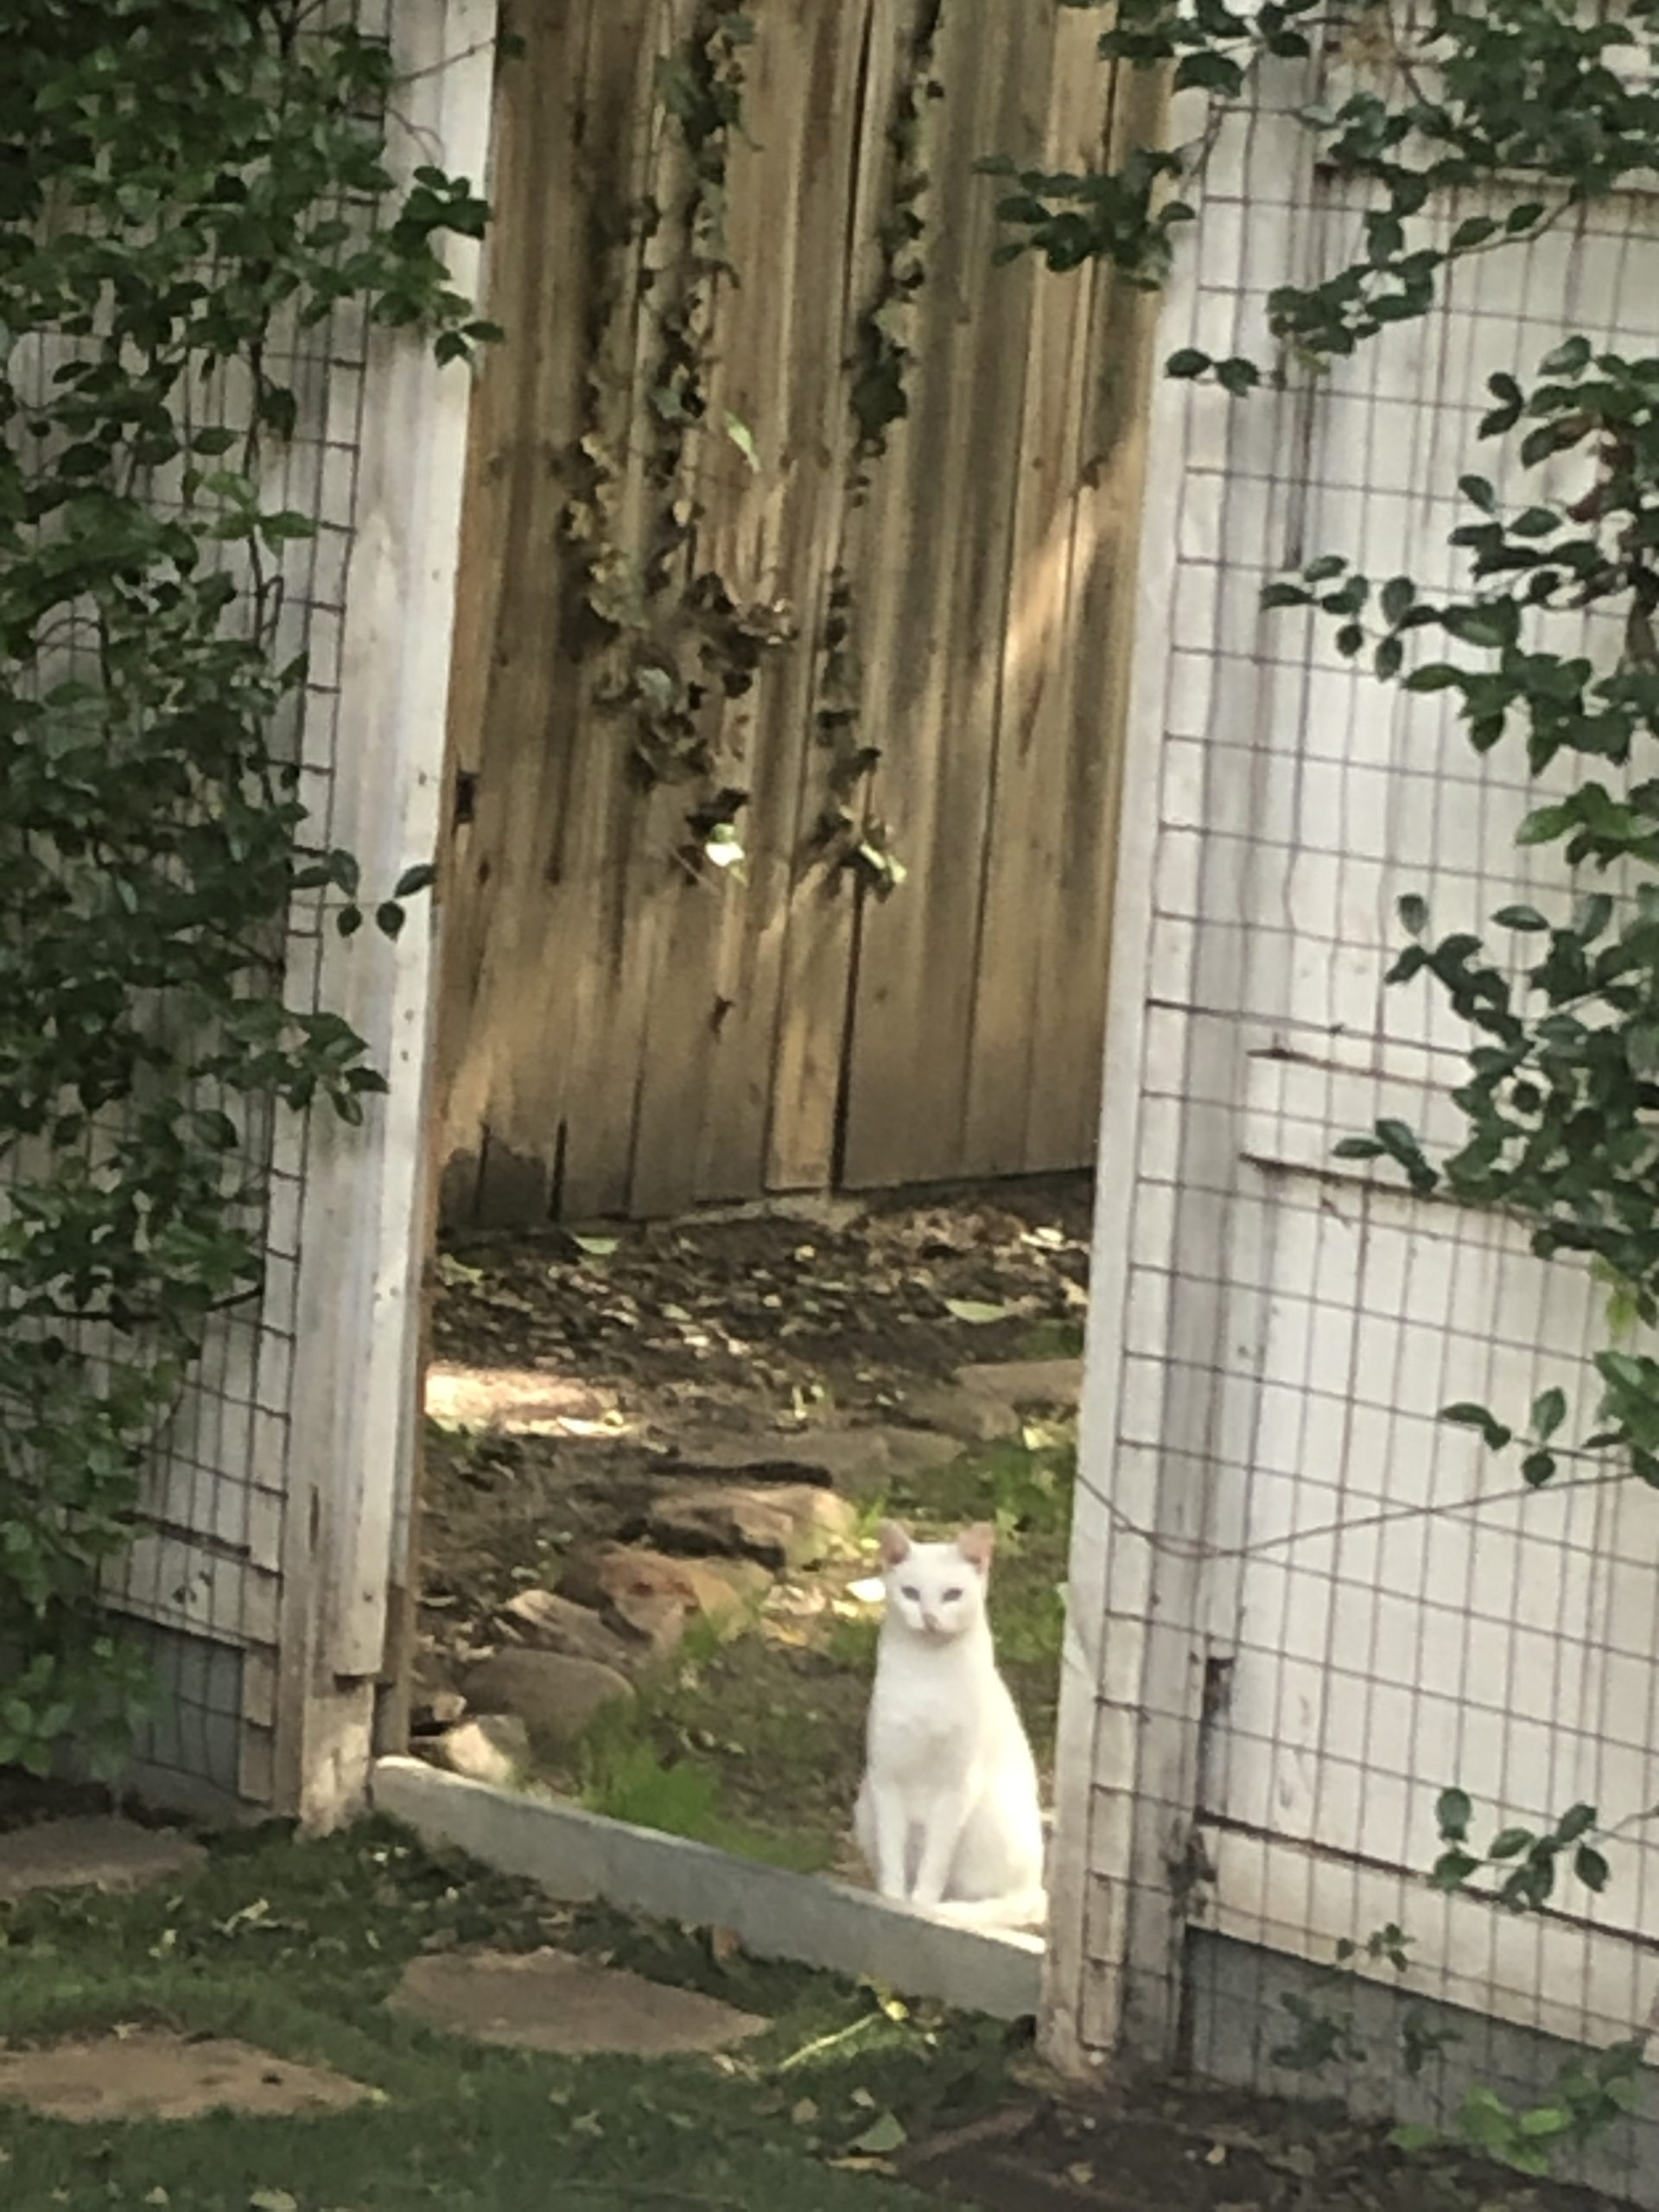 The Cate at the Gate